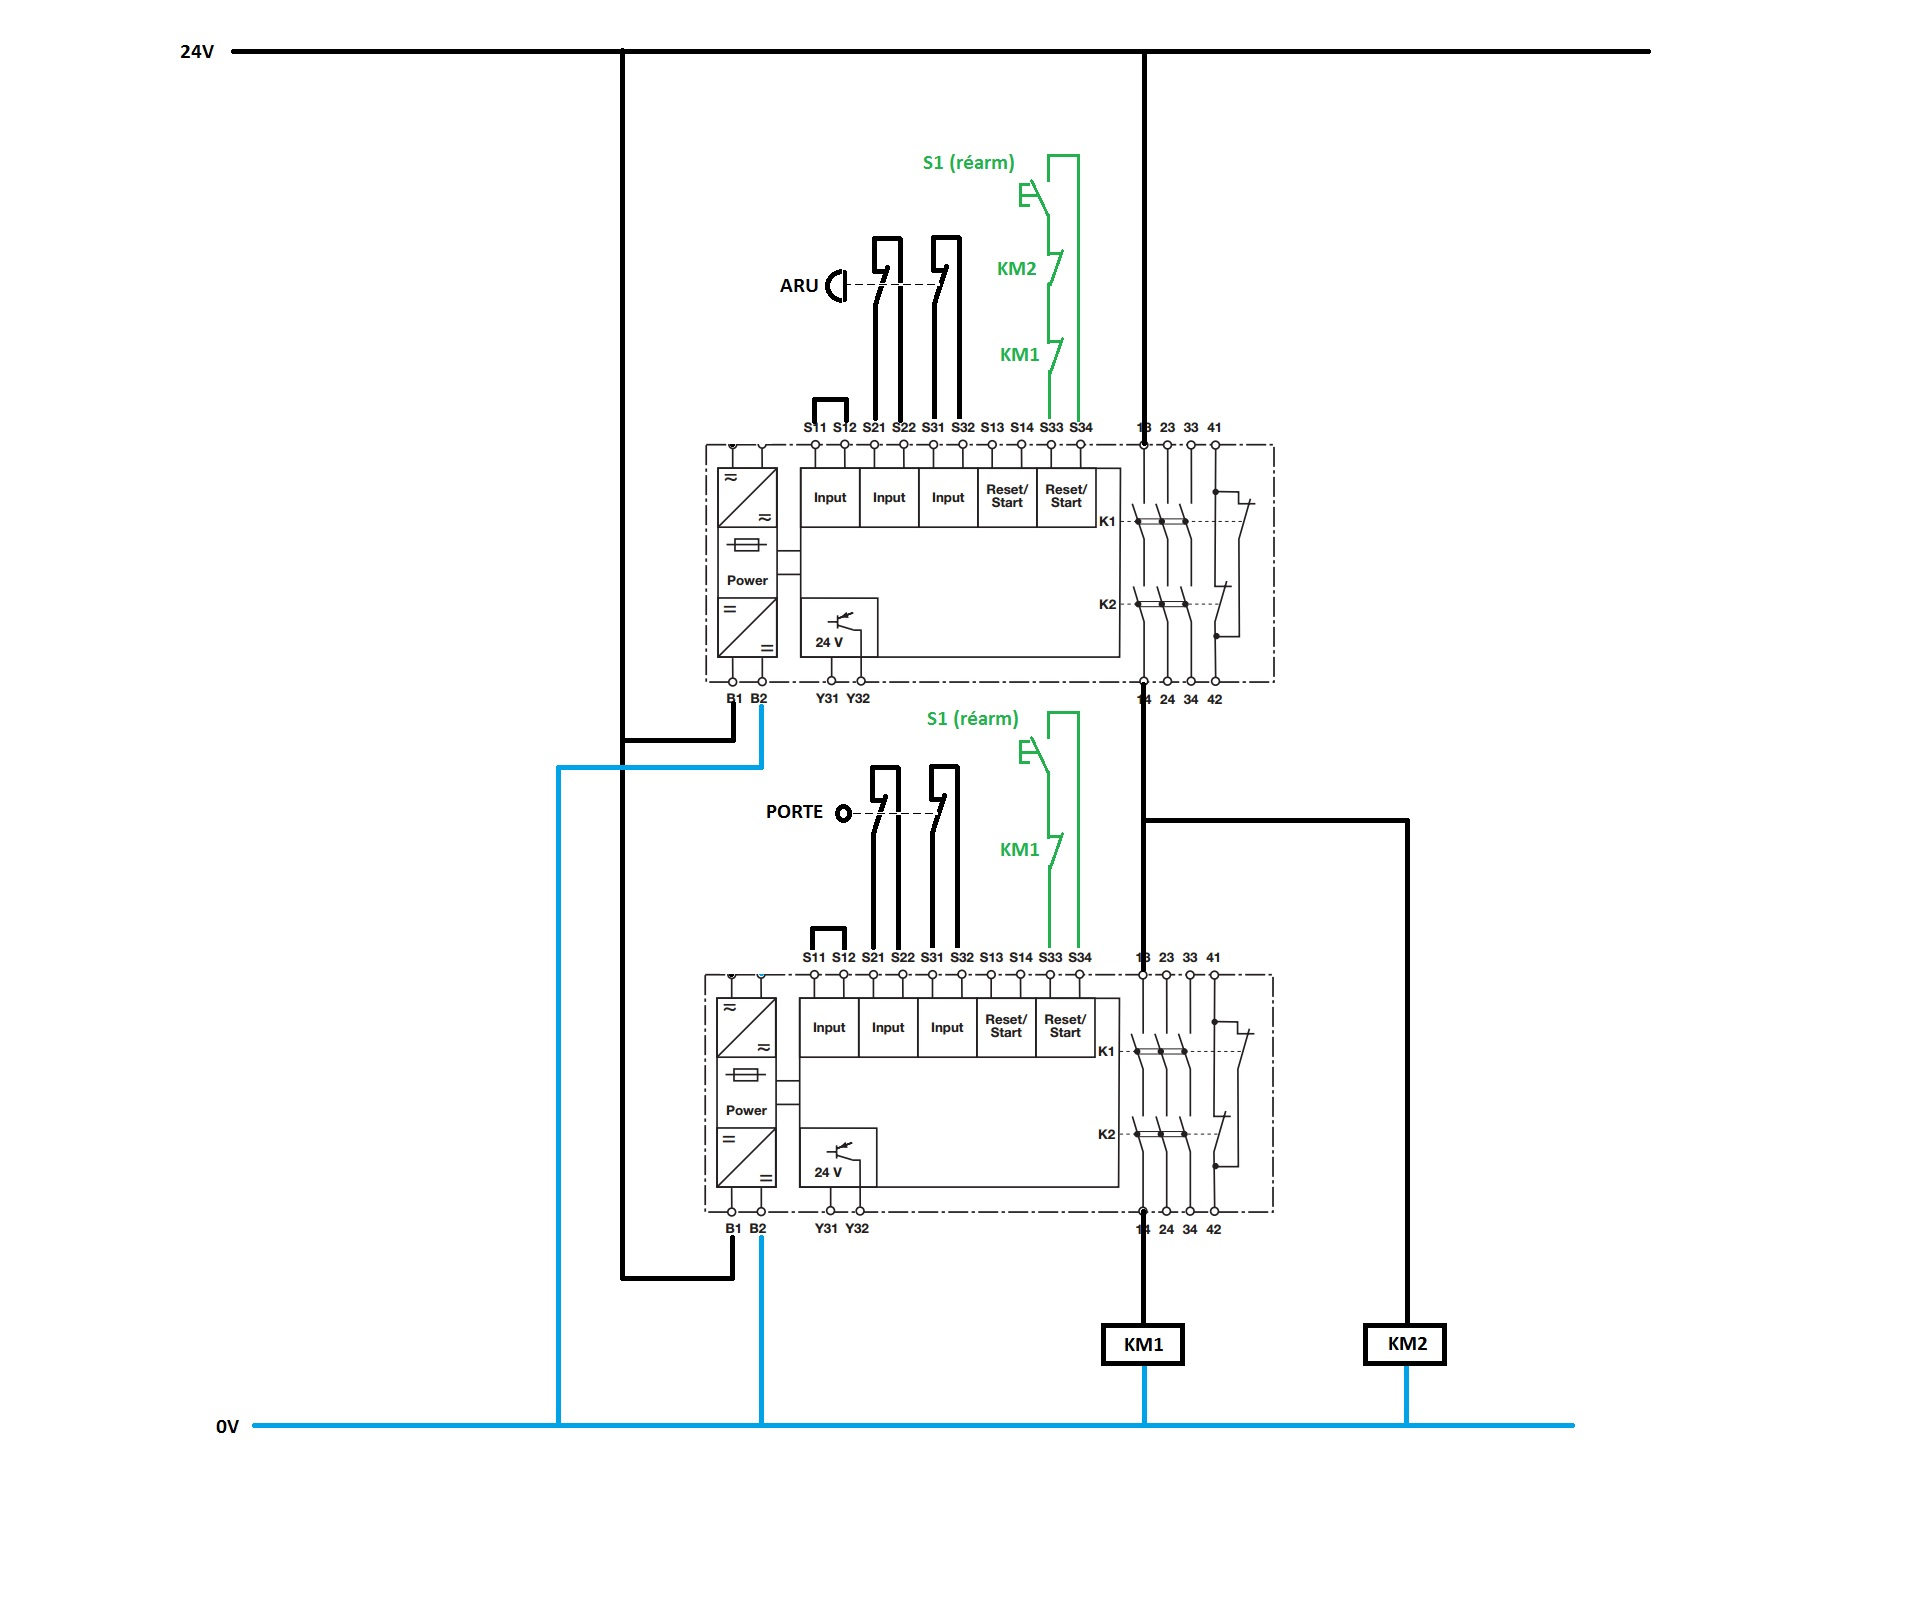 e30 m52 wiring diagram